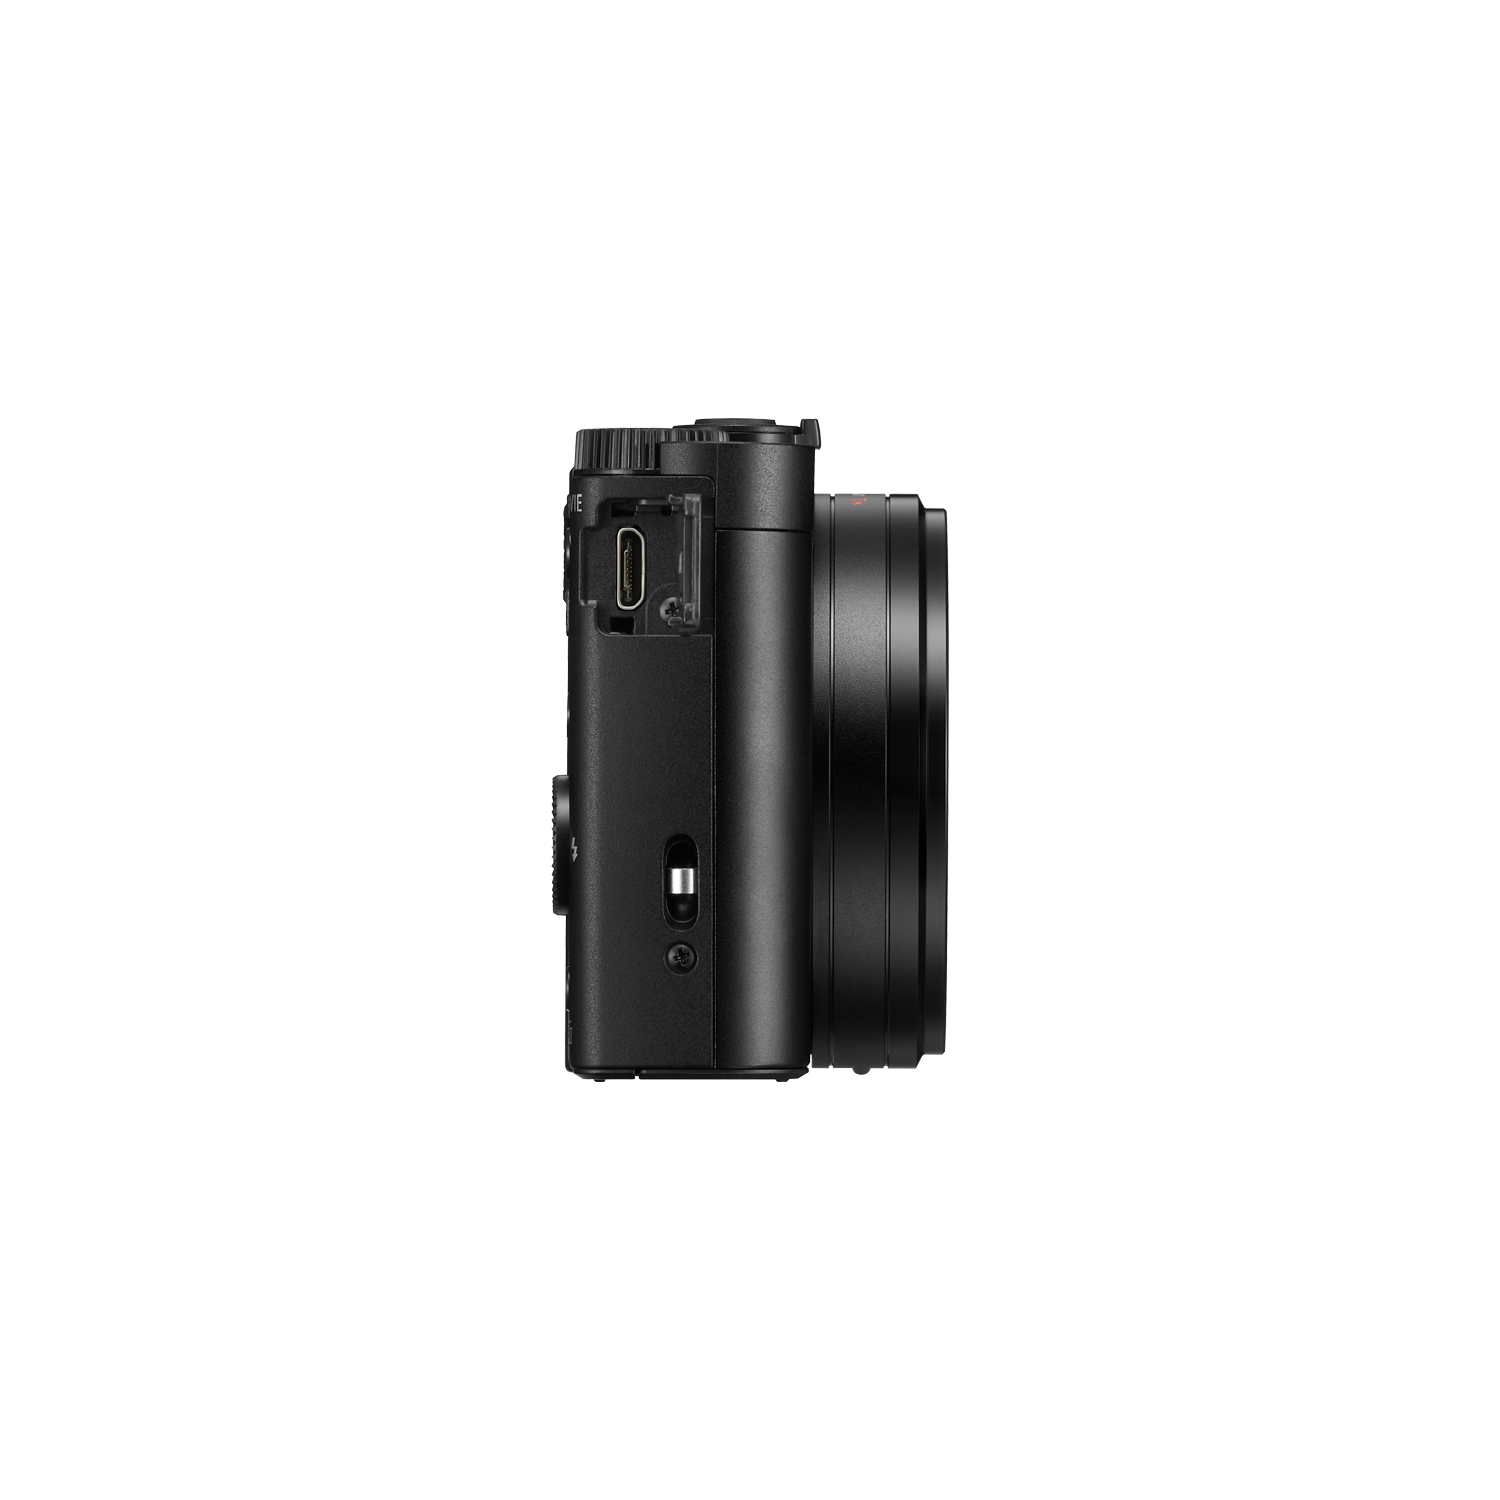 WX800 Compact High-zoom Camera with 4K Recording, , product-image